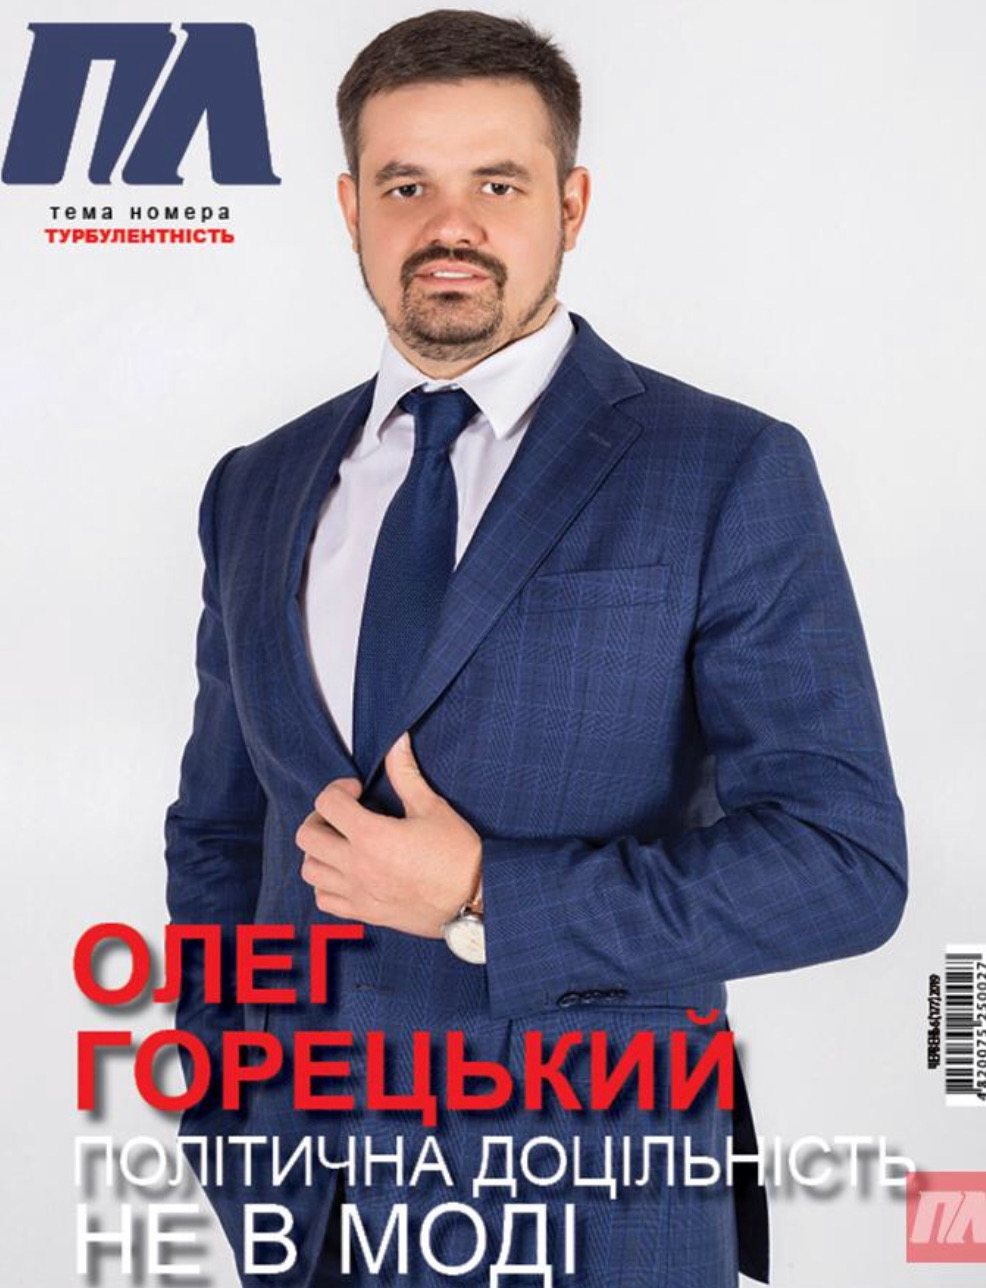 """""""Our system is built on a report, not on a result,"""" said Oleg Goretskyy."""